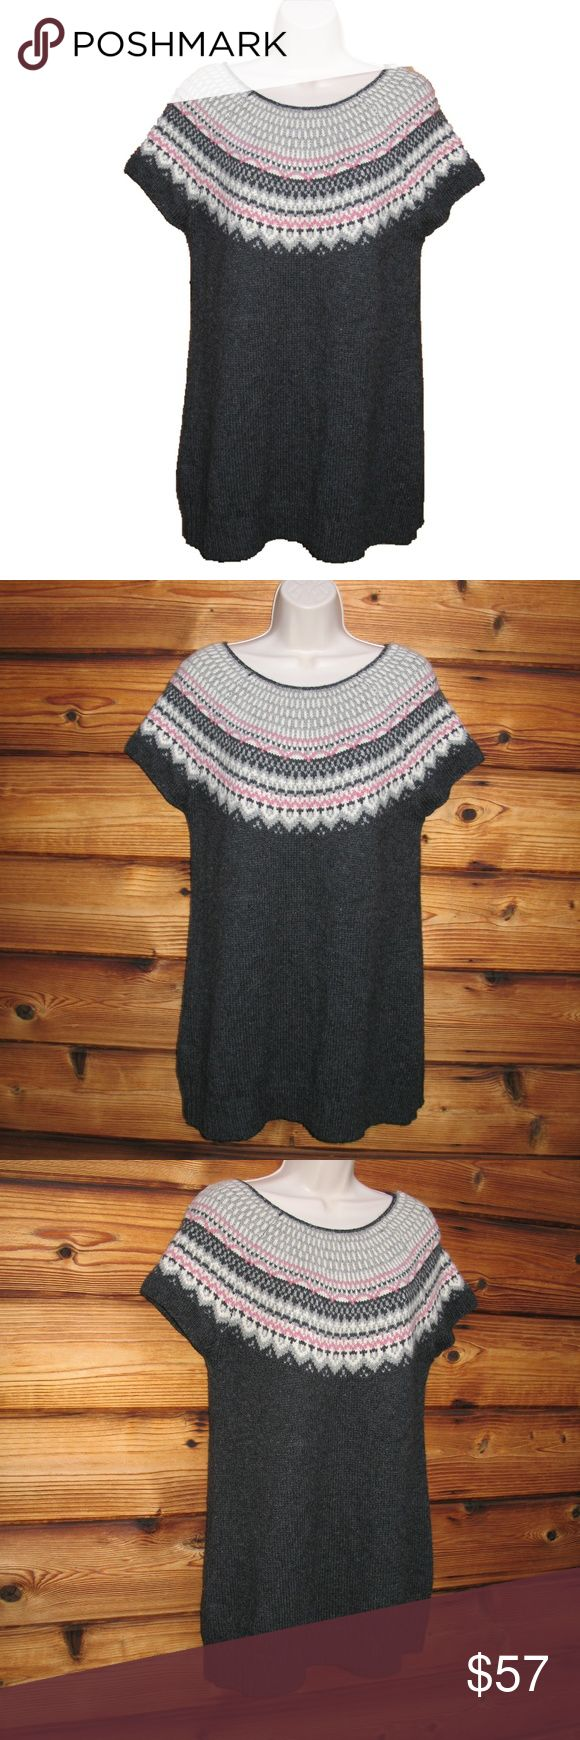 """NEW Ruff Hewn Wool Blend Fair Isle Sweater Tunic L Ruff Hewn Wool Blend Fair Isle Sweater Tunic L  *New without Tags  Details: Ruff Hewn Size: L Color: Charcoal Gray/Pink Pullover style Mini length Short sleeves Tie back 50% Acrylic/25% Wool/25% Nylon  Measurements: Length: 31"""" Bust: 40"""" Waist: 40"""" Ruff Hewn Sweaters Crew & Scoop Necks"""